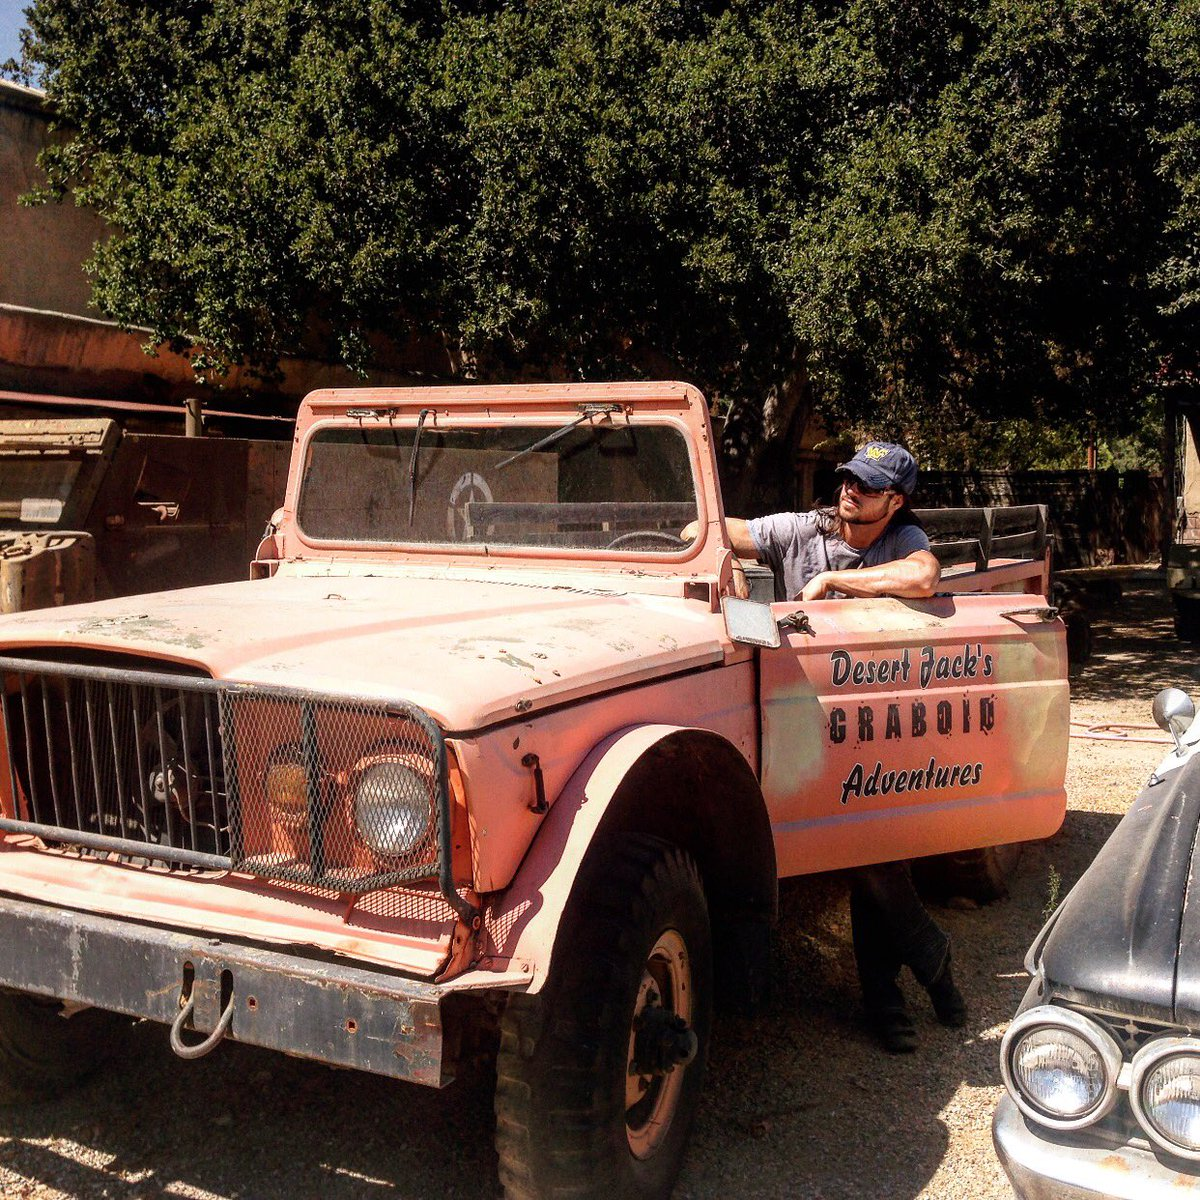 John Morrison On Twitter Tbt Location Scouting 4 Boonethebountyhunter At Melody Ranch Marked Out The Desert Jack S Truck From Tremors